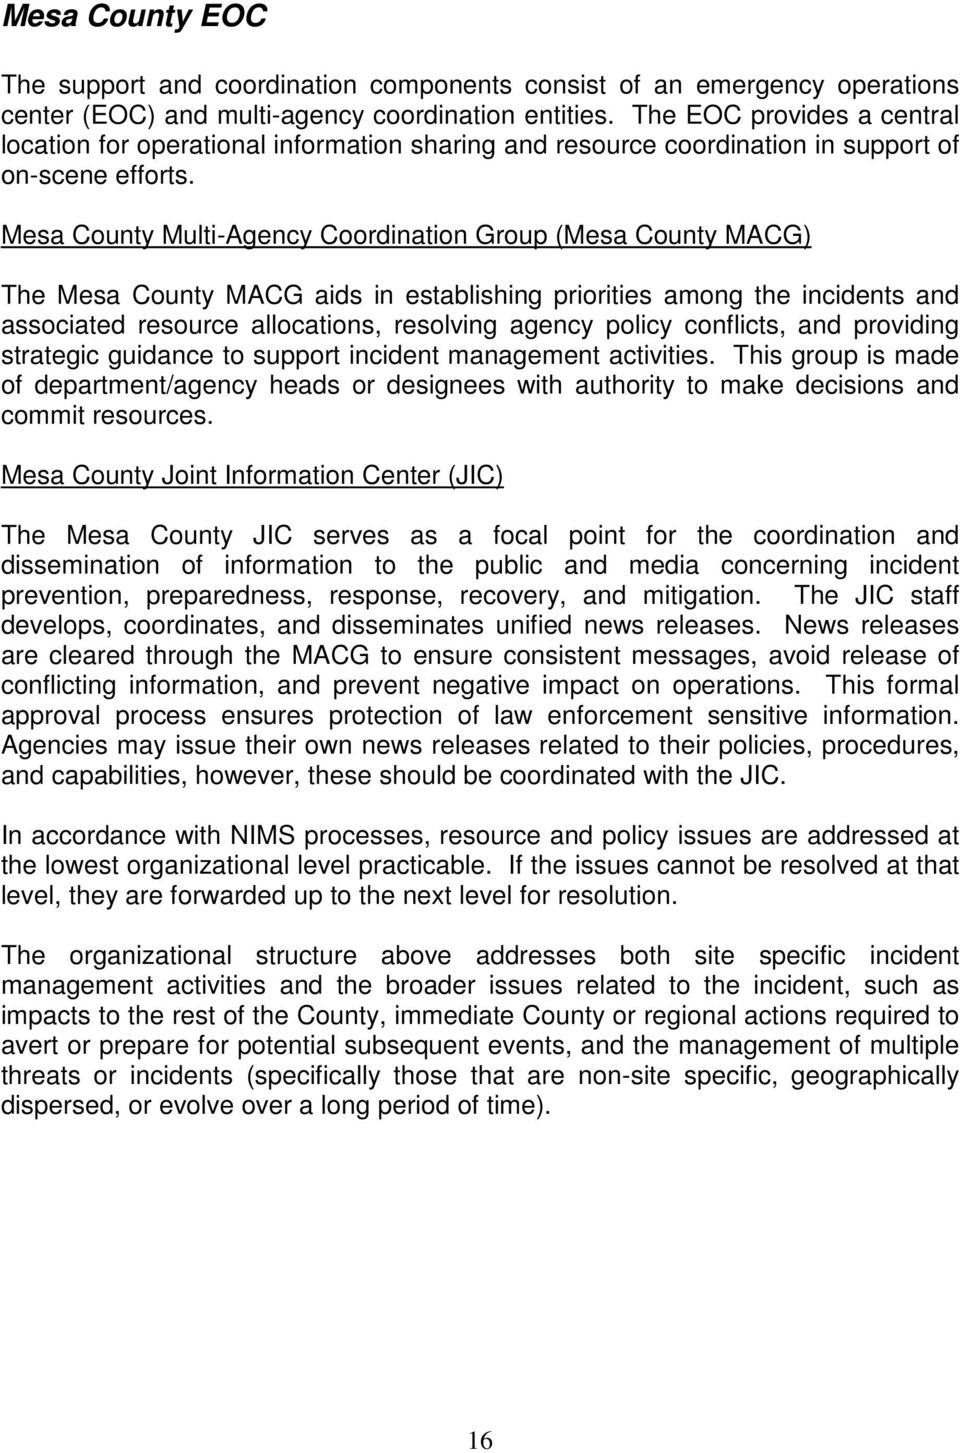 Mesa County Multi-Agency Coordination Group (Mesa County MACG) The Mesa County MACG aids in establishing priorities among the incidents and associated resource allocations, resolving agency policy